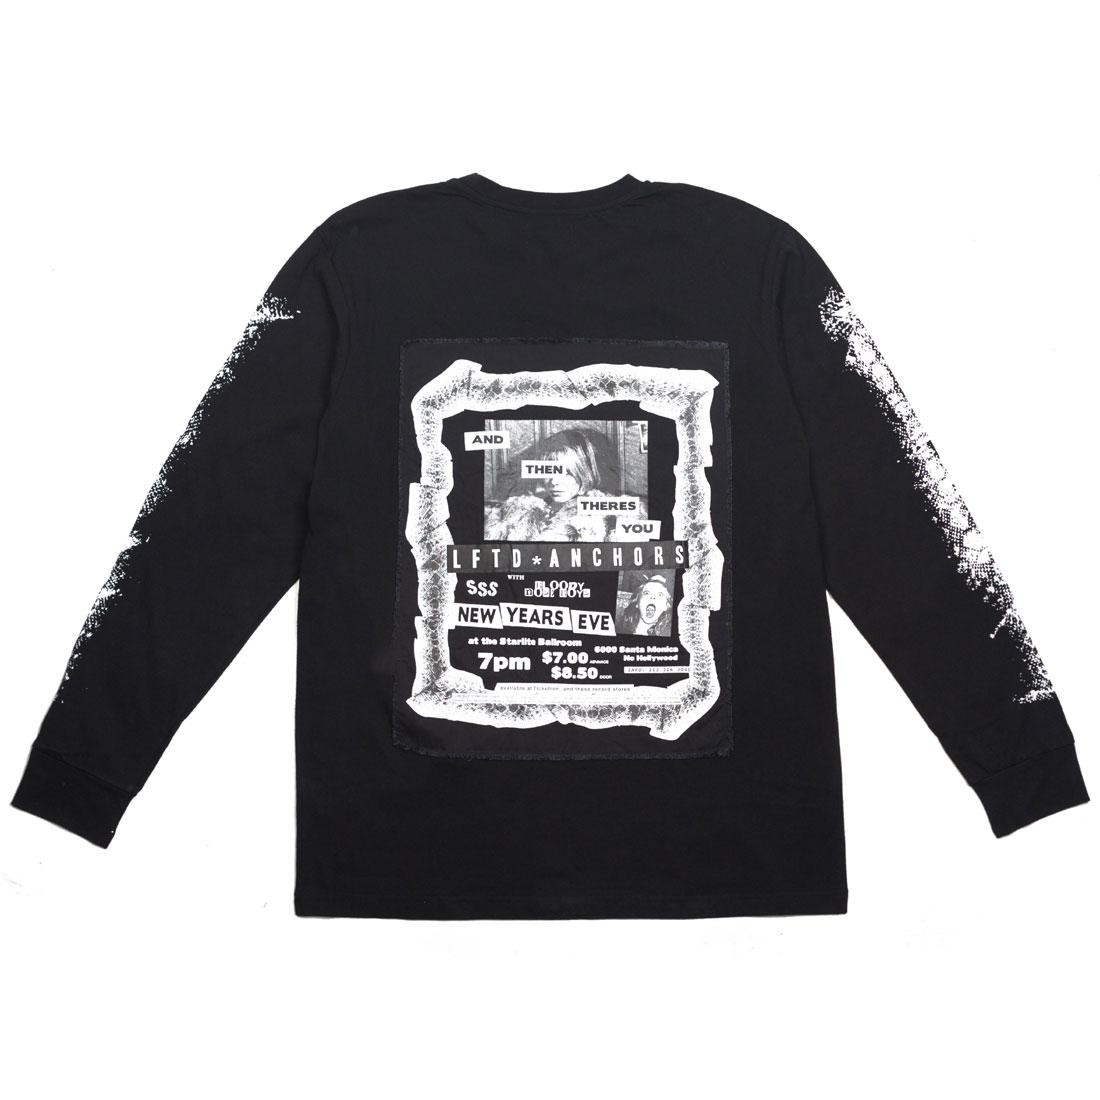 【海外限定】スリーブ LONG Tシャツ メンズファッション トップス】【送料無料】【 SLEEVE LIFTED SLEEVE ANCHORS MEN FLYER LONG TEE BLACK】【送料無料】, BORN FREE E-SHOP:87dcc757 --- officewill.xsrv.jp